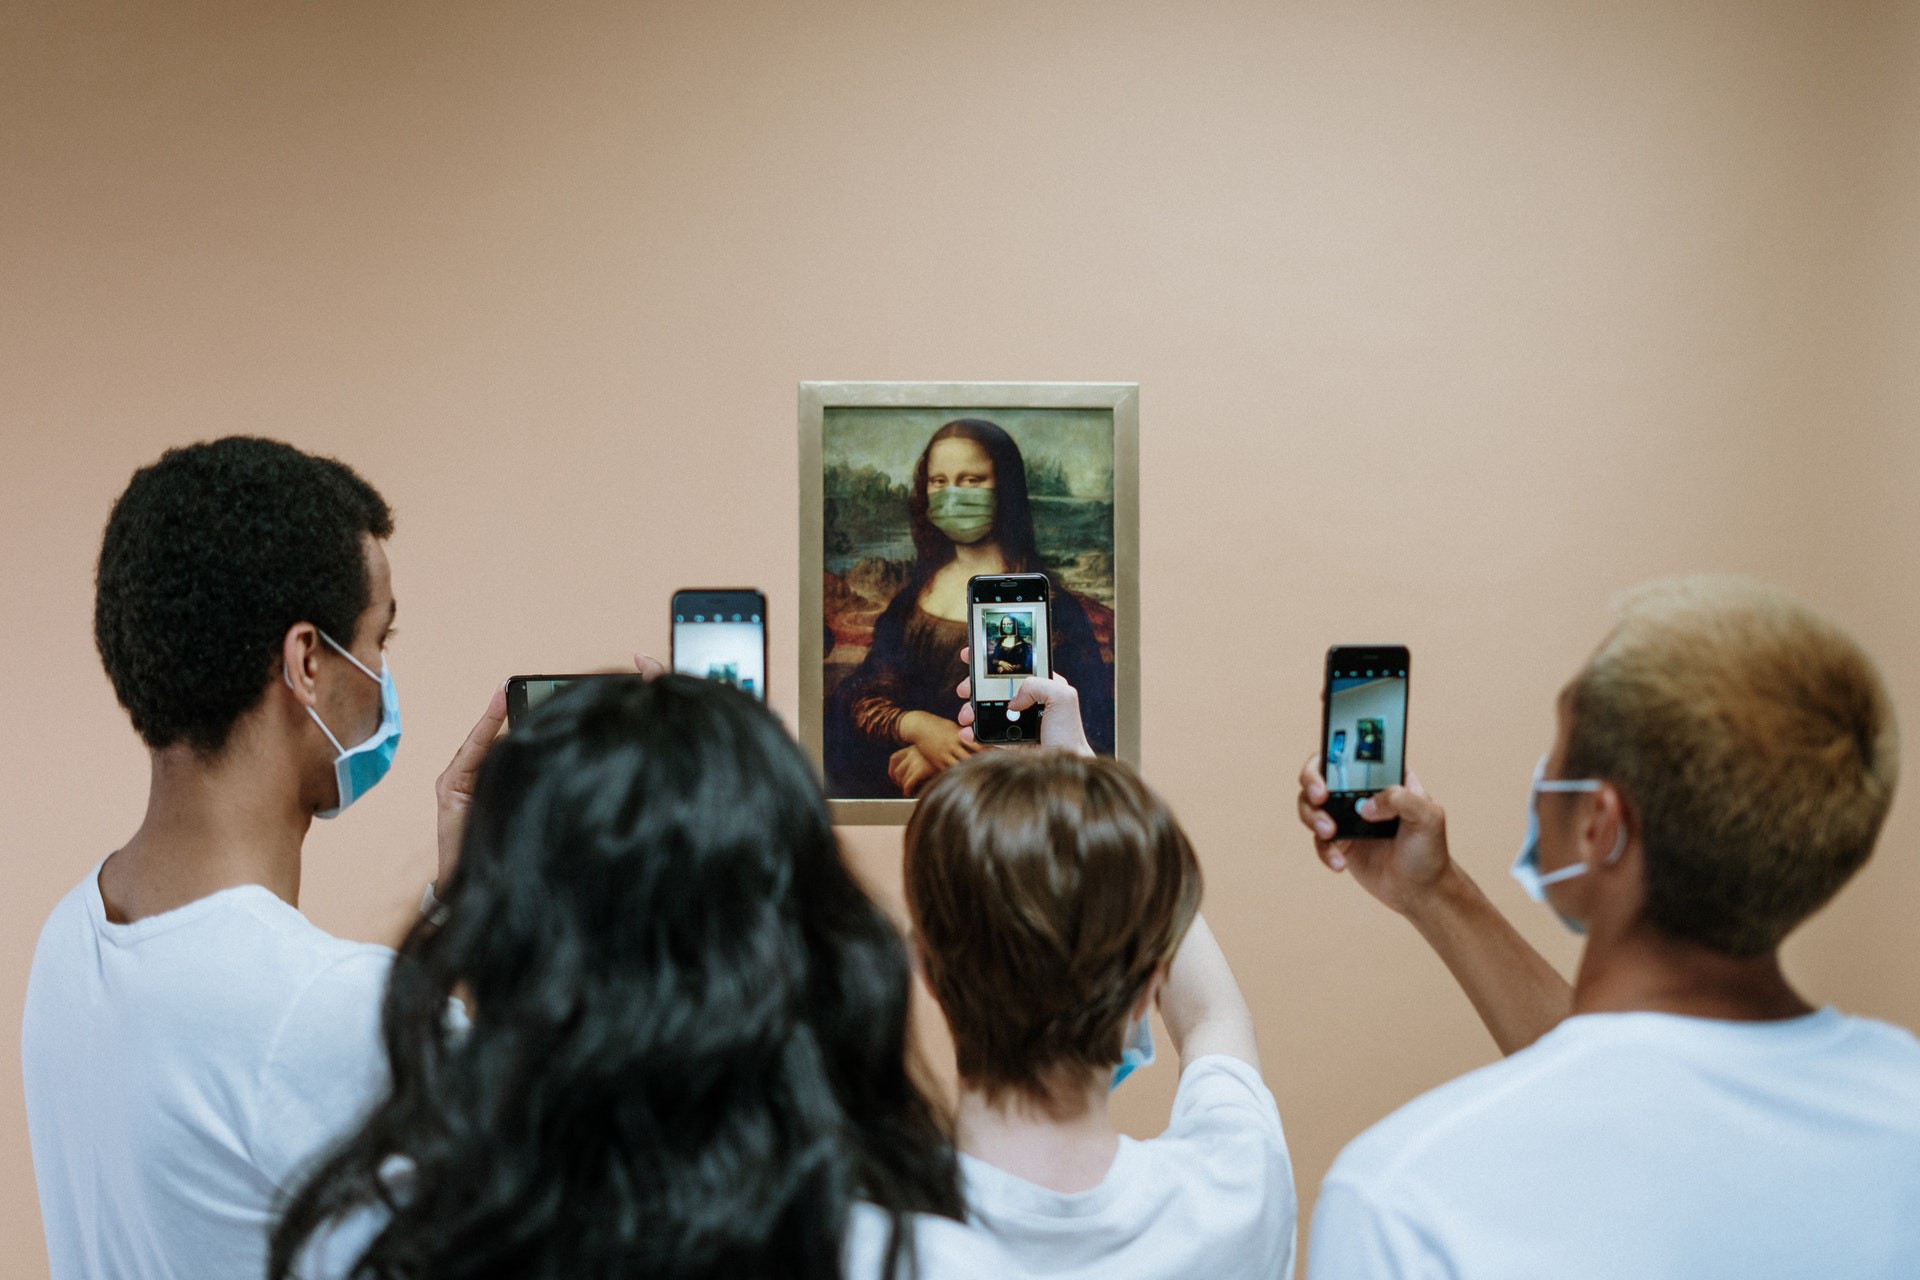 A group of people with medical masks takes a photo of a painting of the Mona Lisa, also wearing a medical mask.